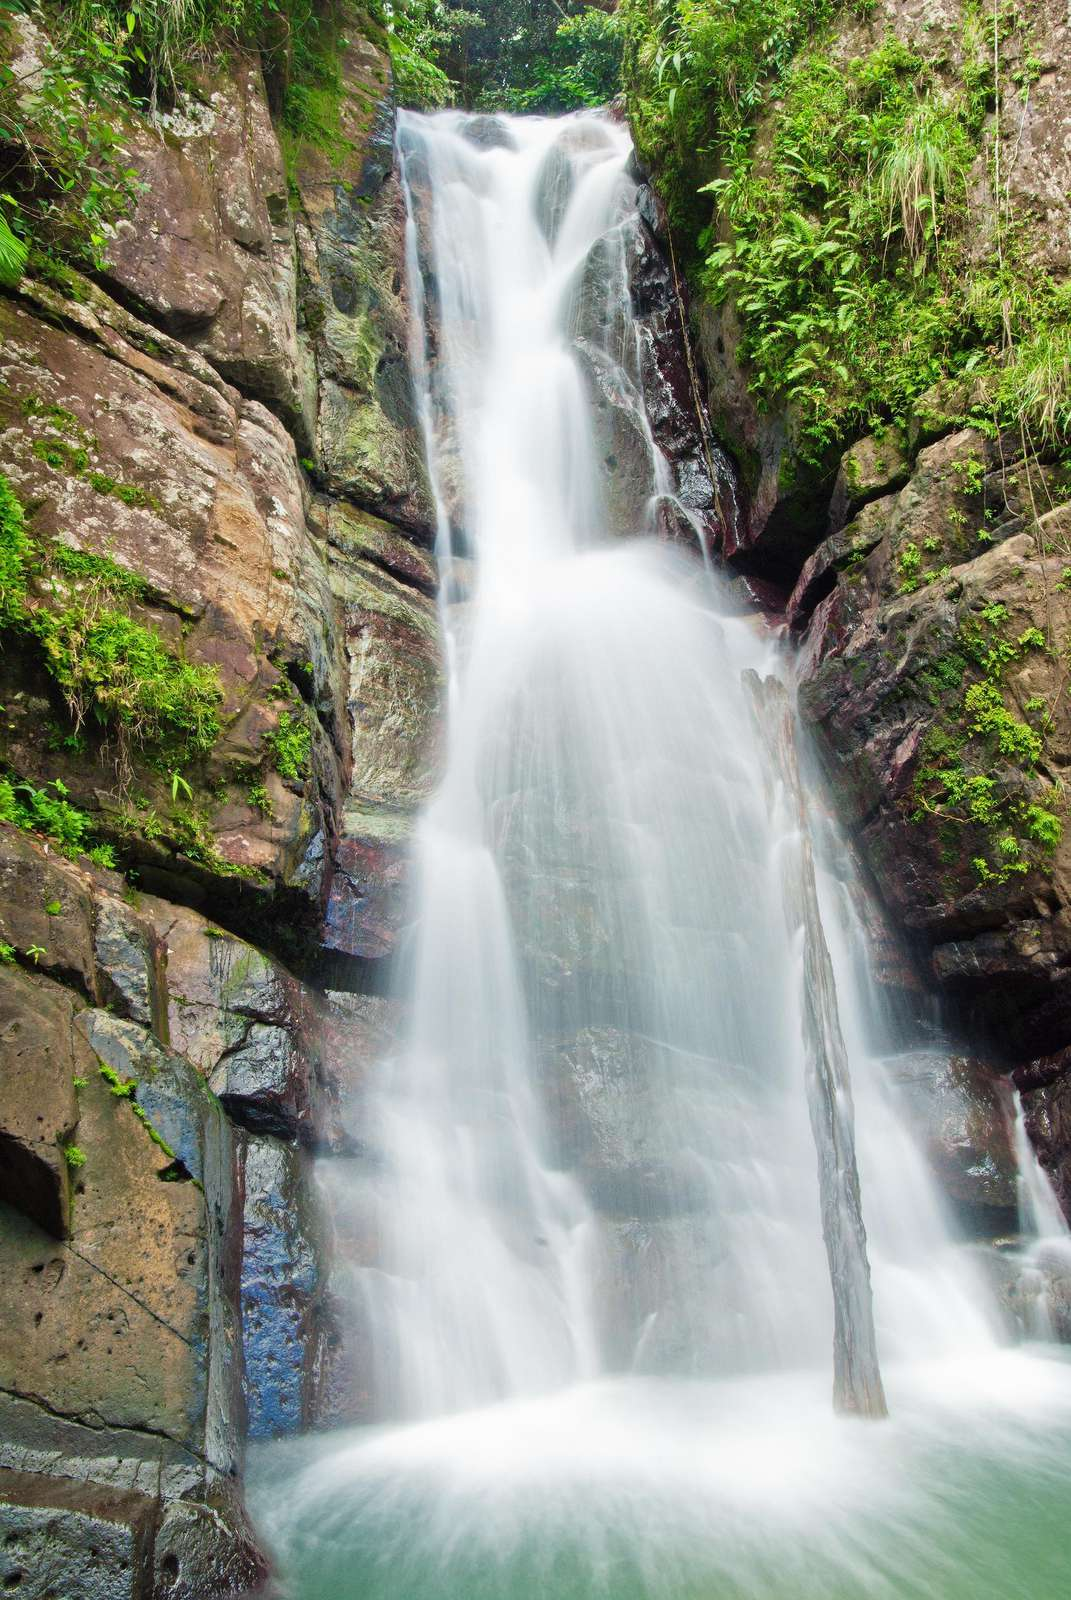 El Yunque rain forest is a must during your stay